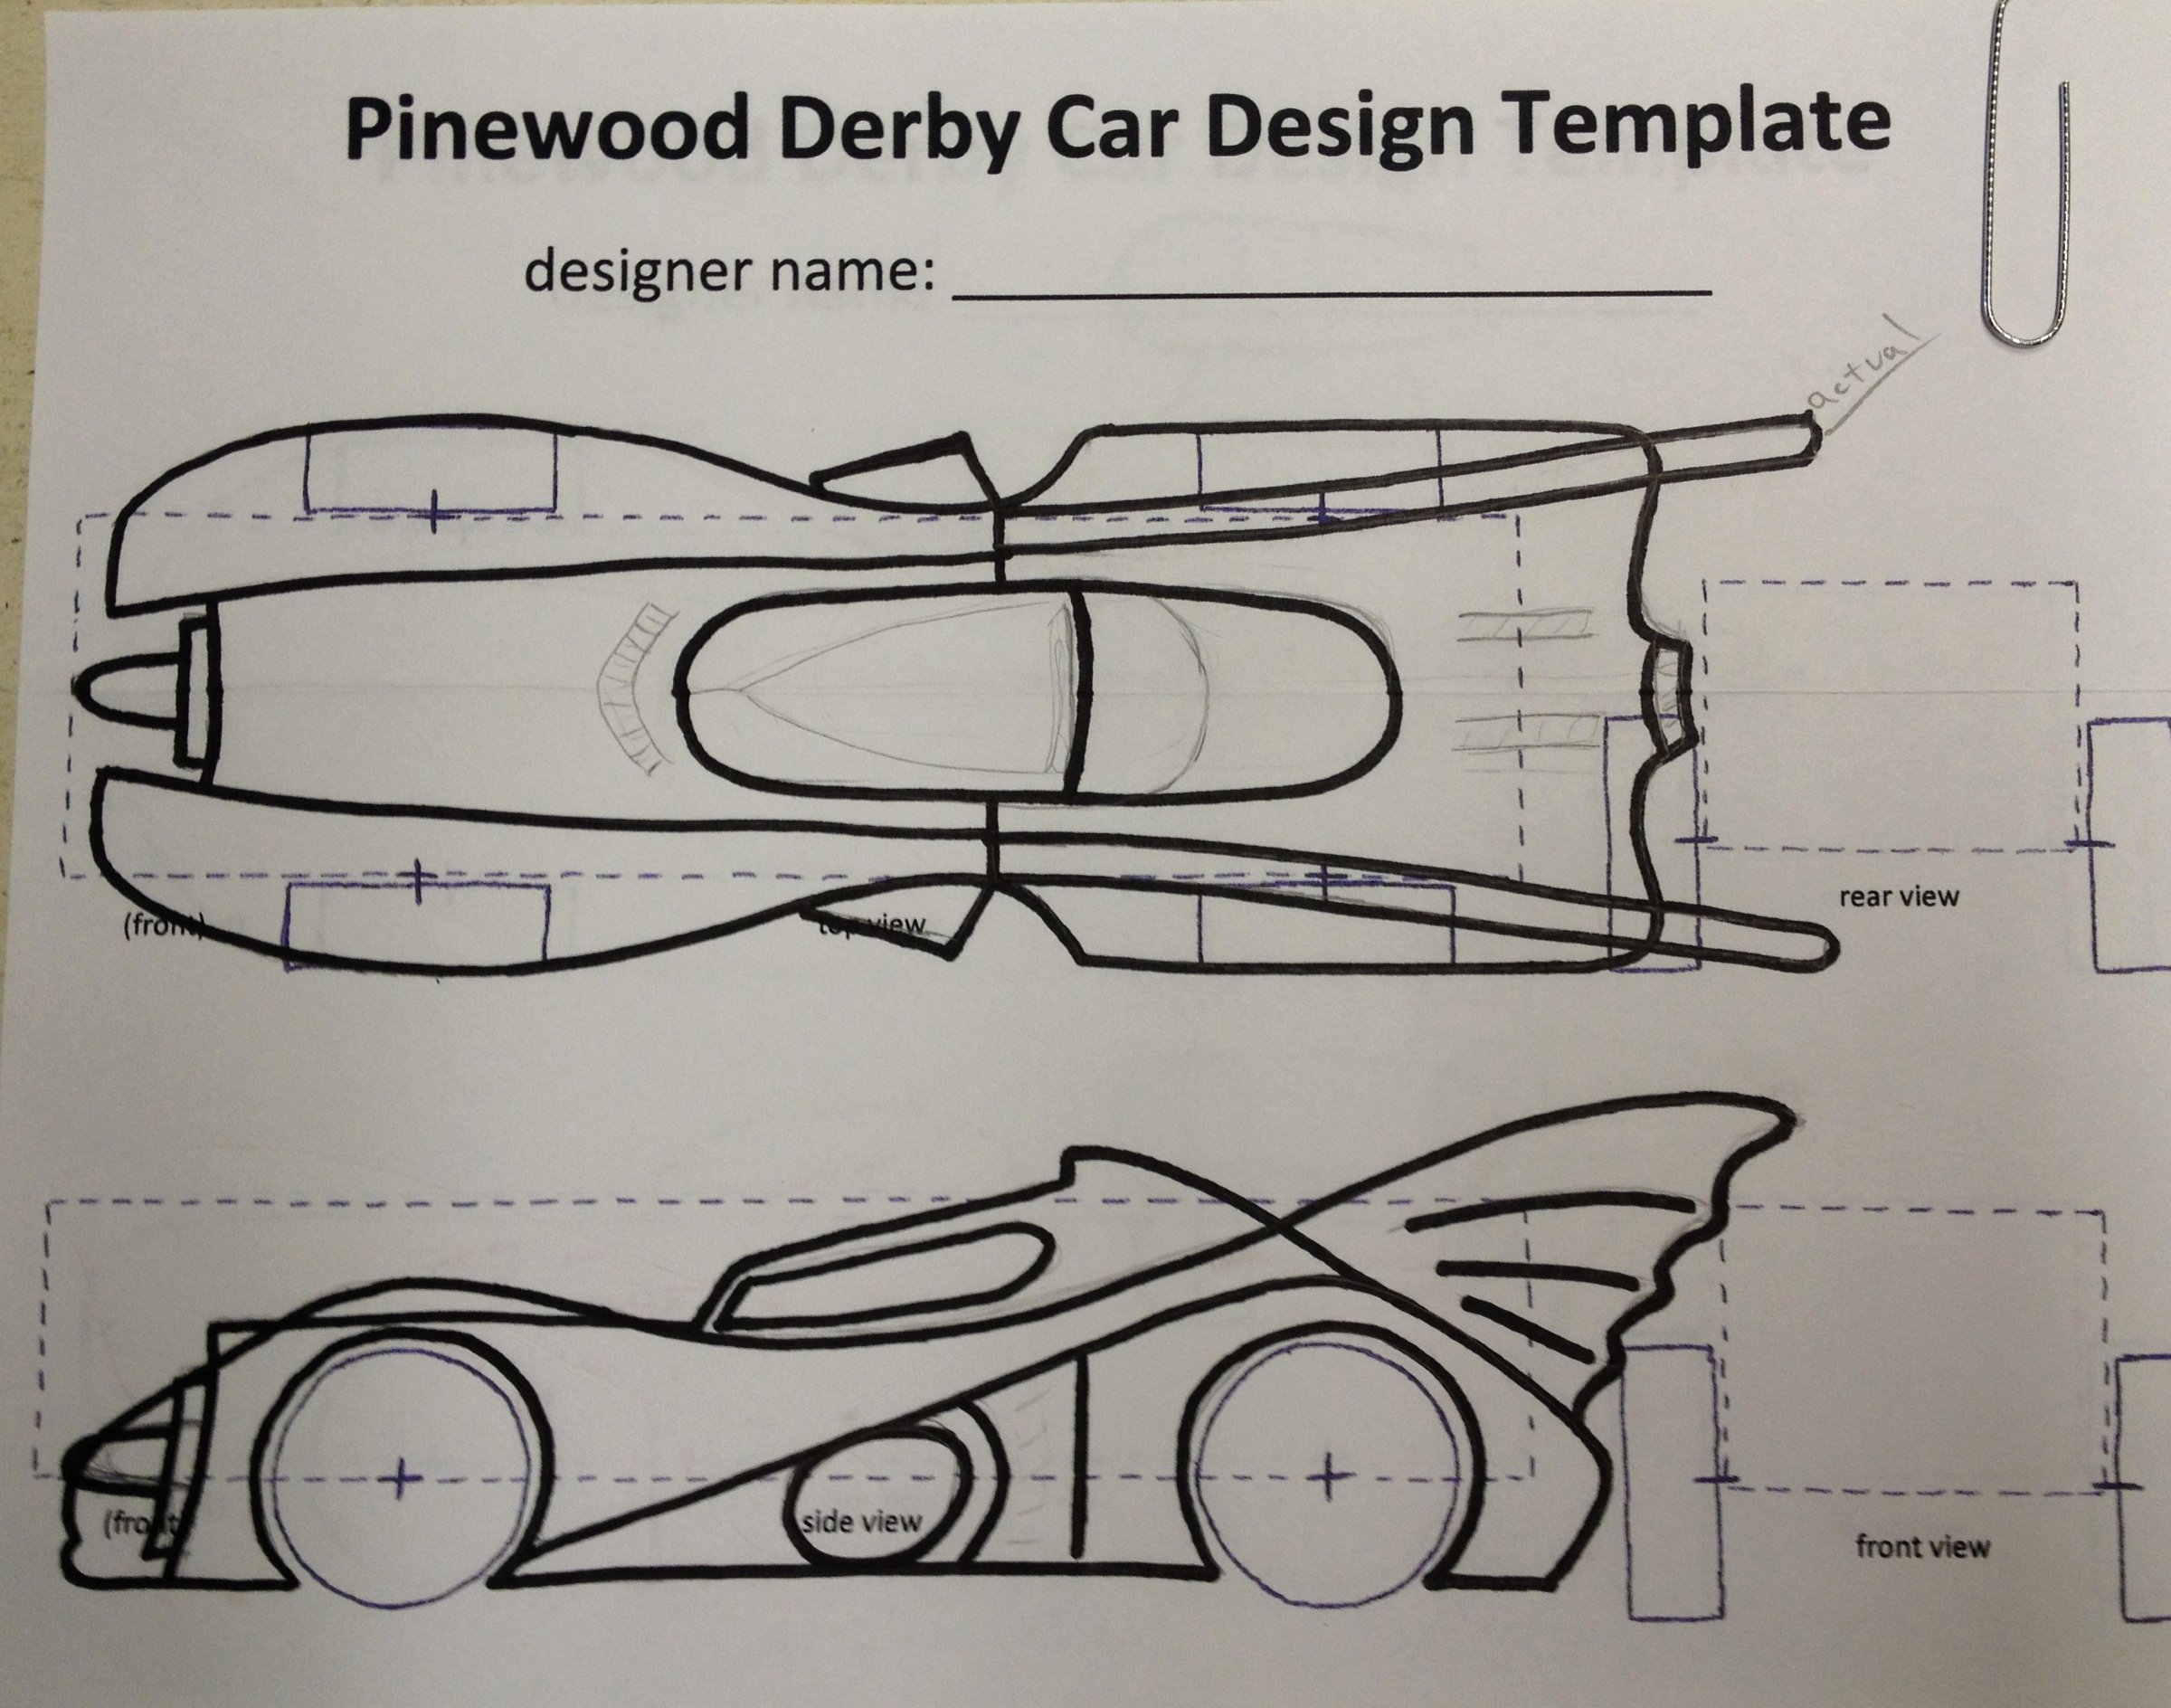 Pinewood Derby Lamborghini Template Best Of How to Build An Awesome Batmobile Pinewood Derby Car